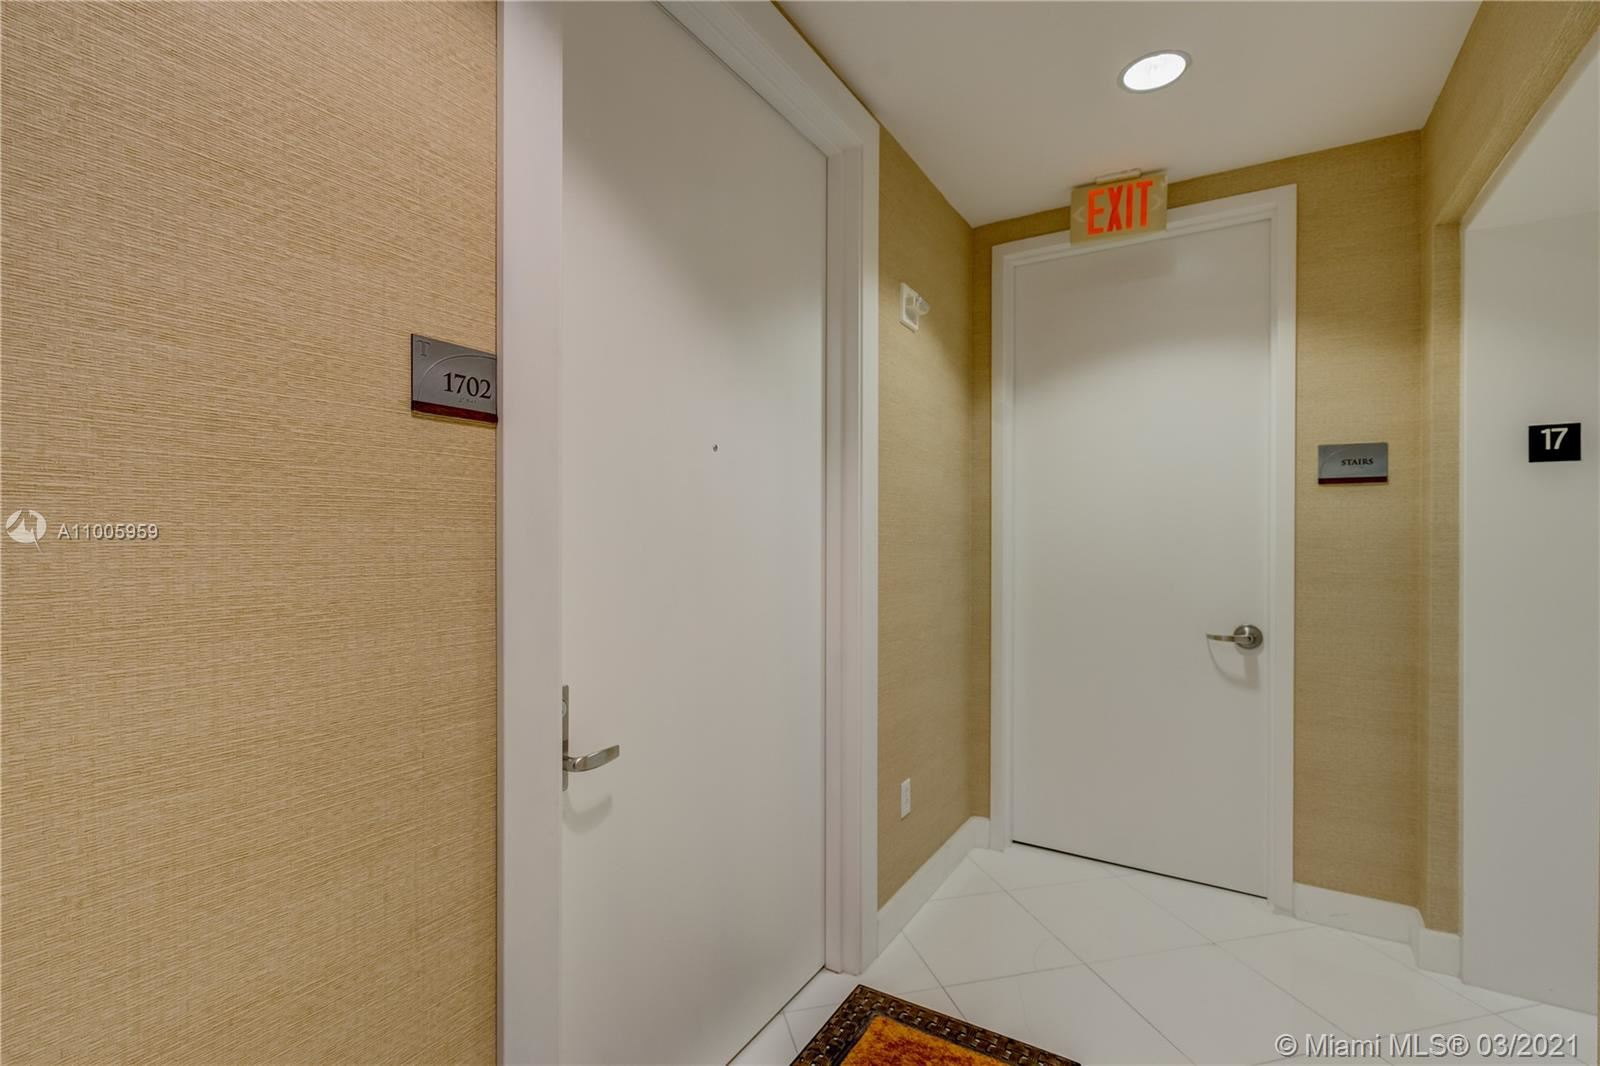 Photo of 16001 Collins Ave #1702, Sunny Isles Beach, FL 33160 (MLS # A11005959)